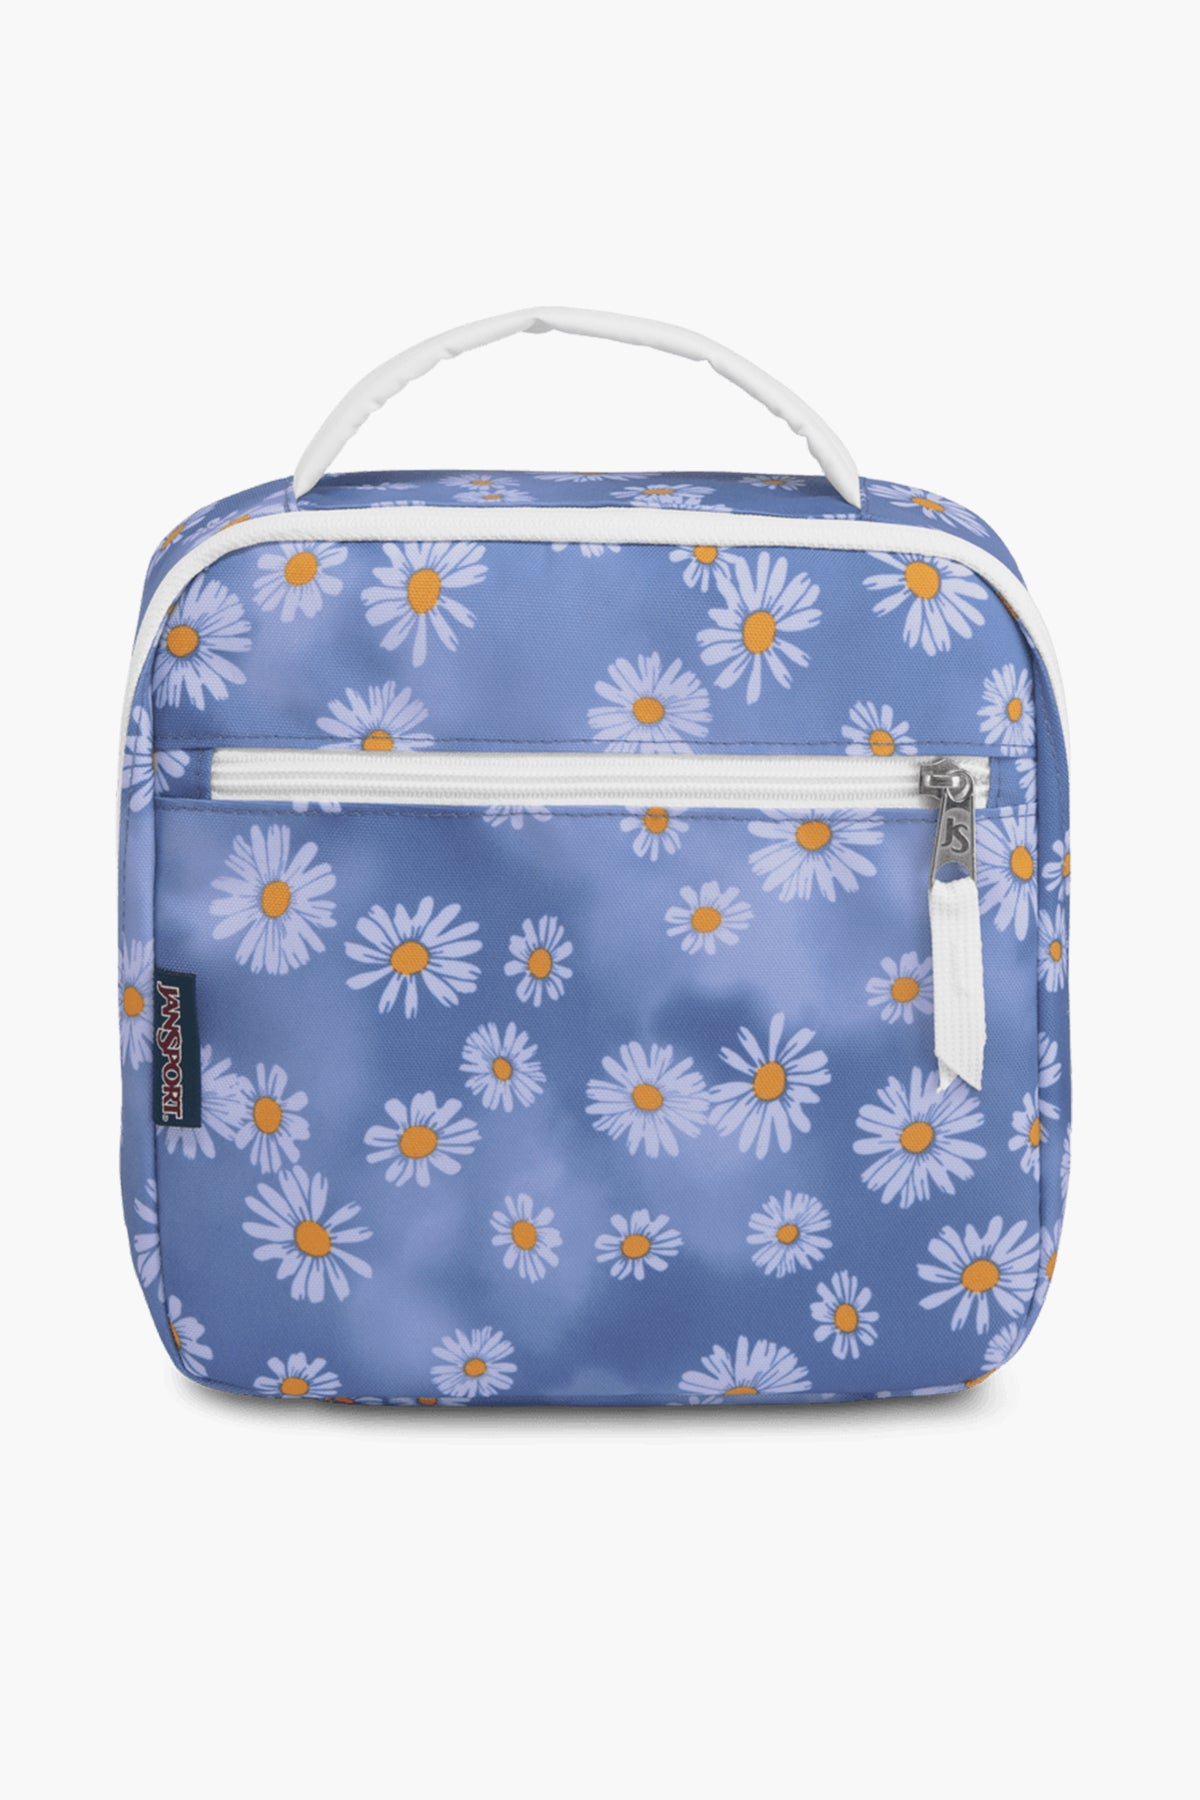 JanSport Lunch Break Kids Lunchbox - Daisy Haze